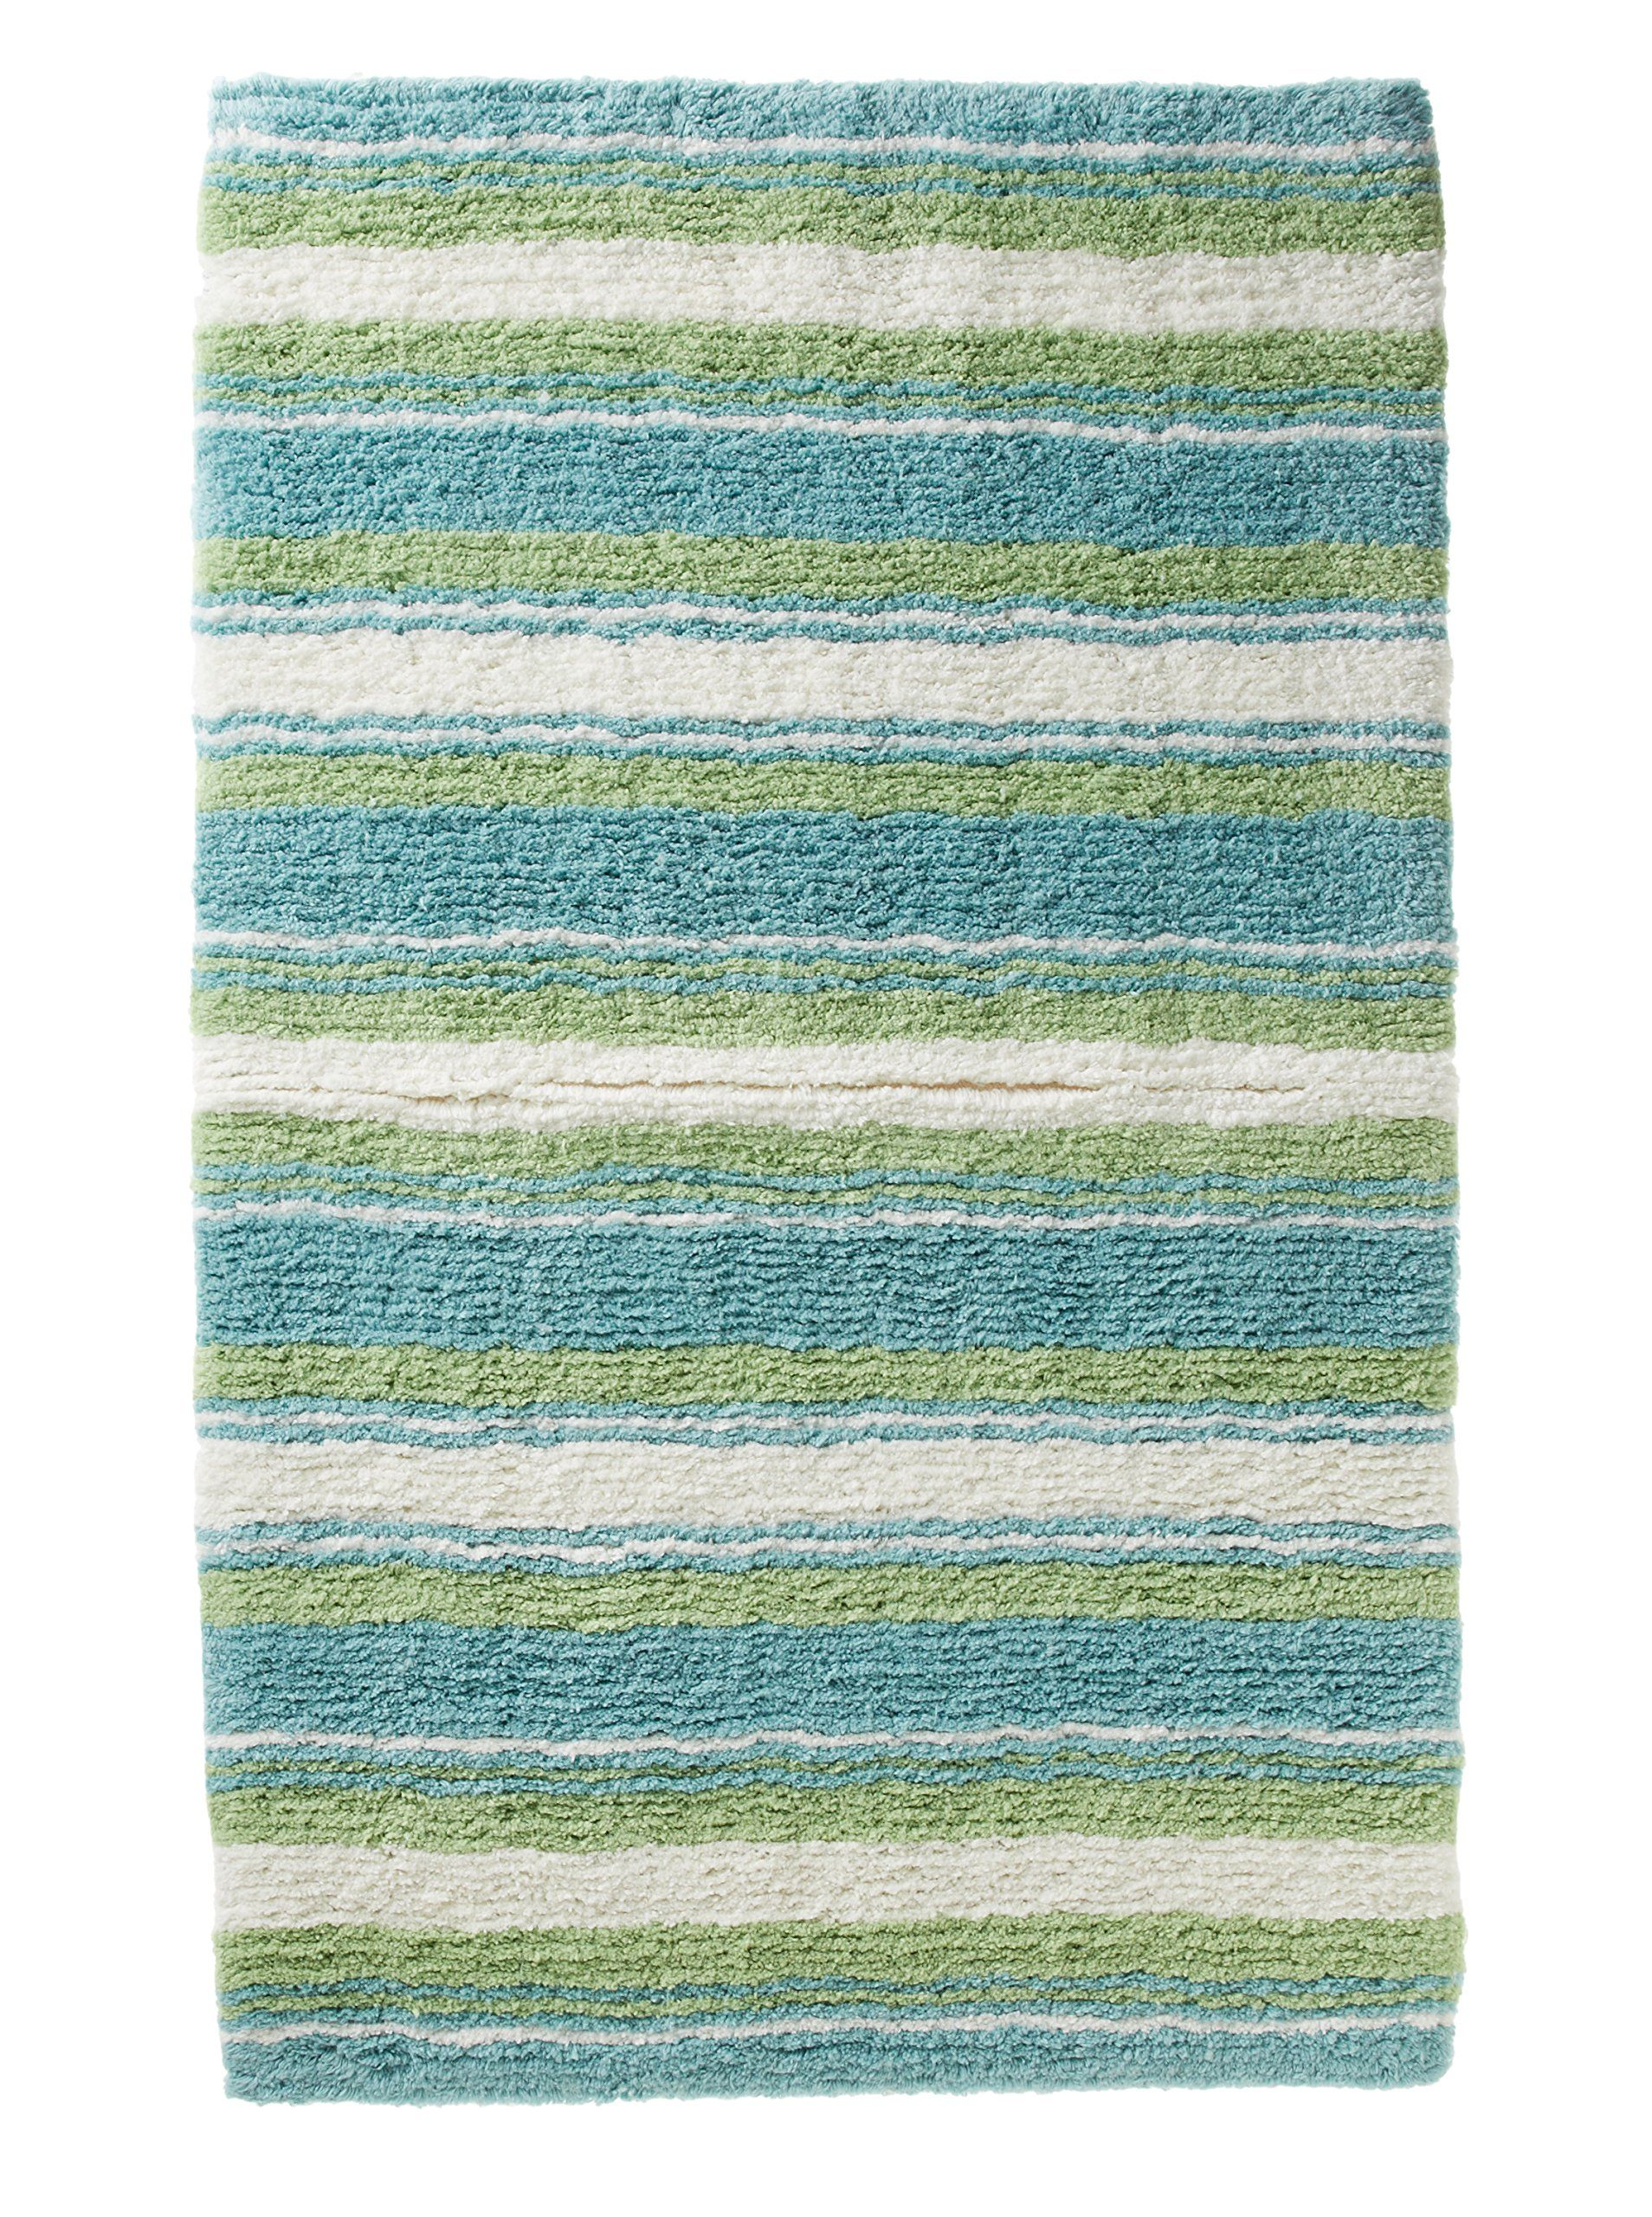 gowns rug dressing beach towels mats bath aneesi rainbow luxury mat towel